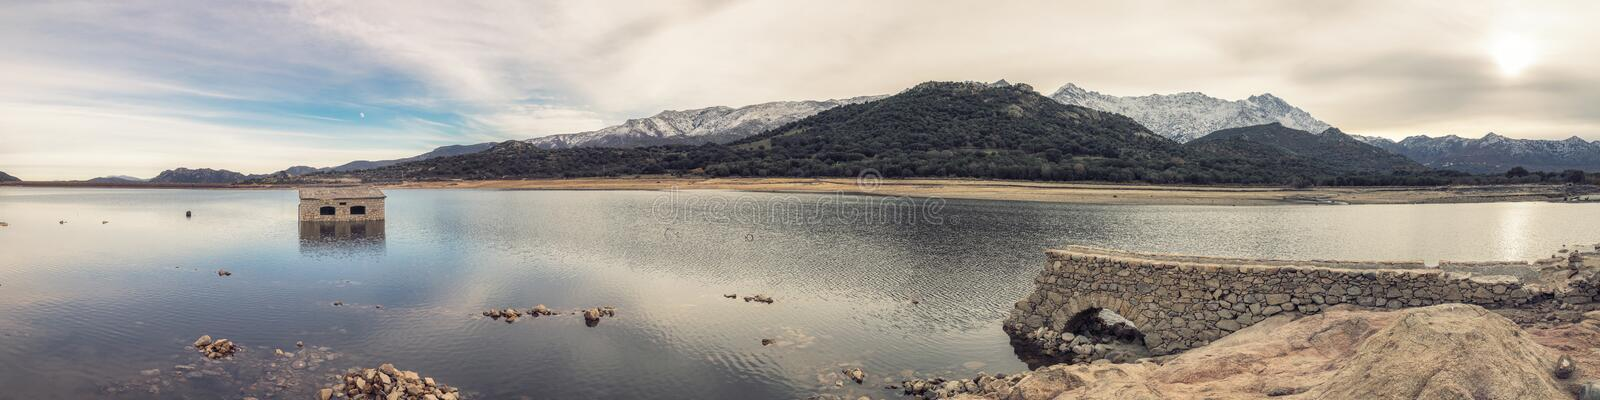 Abandoned and partially submerged stone building in lake in Corsica royalty free stock images